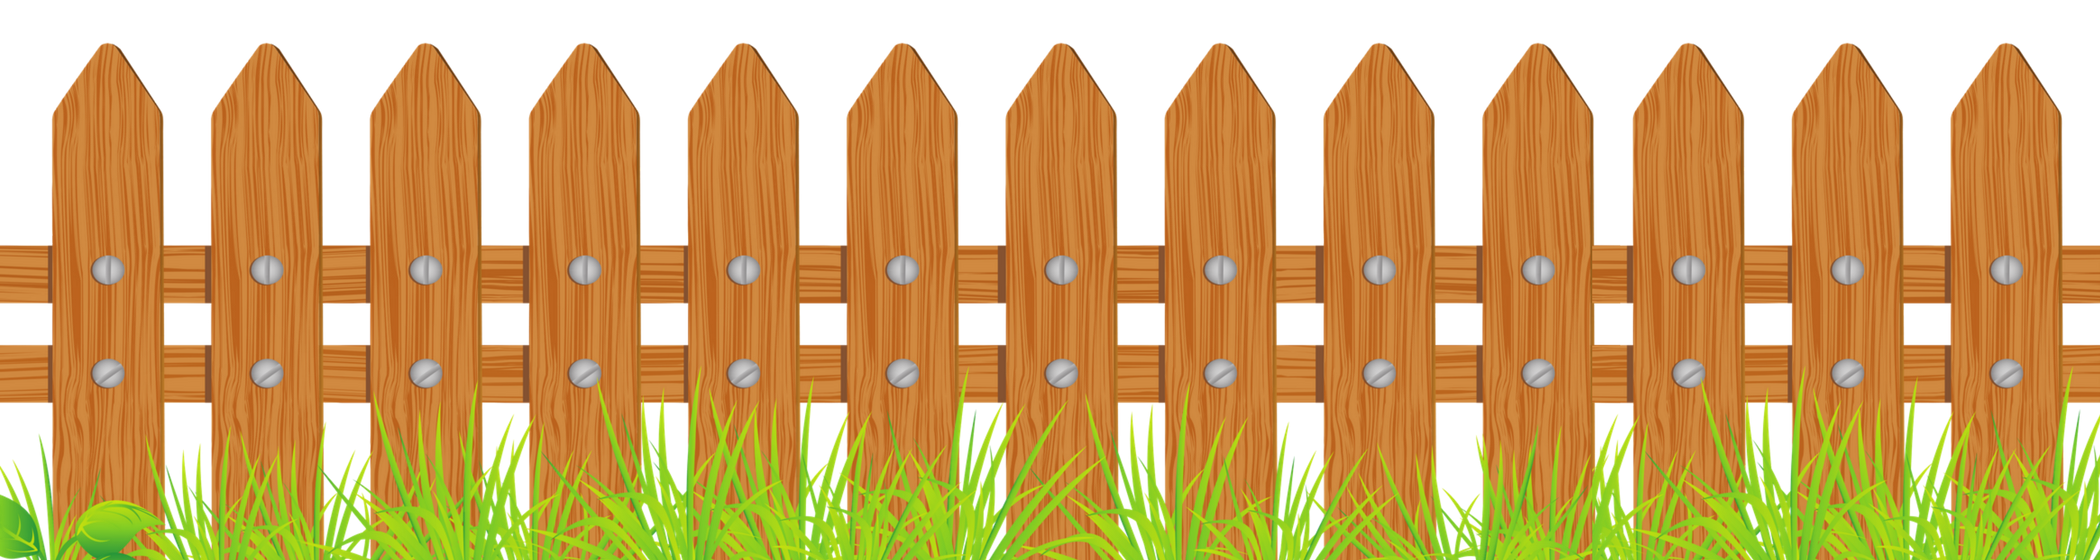 Fence border clipart clipart images gallery for free download.